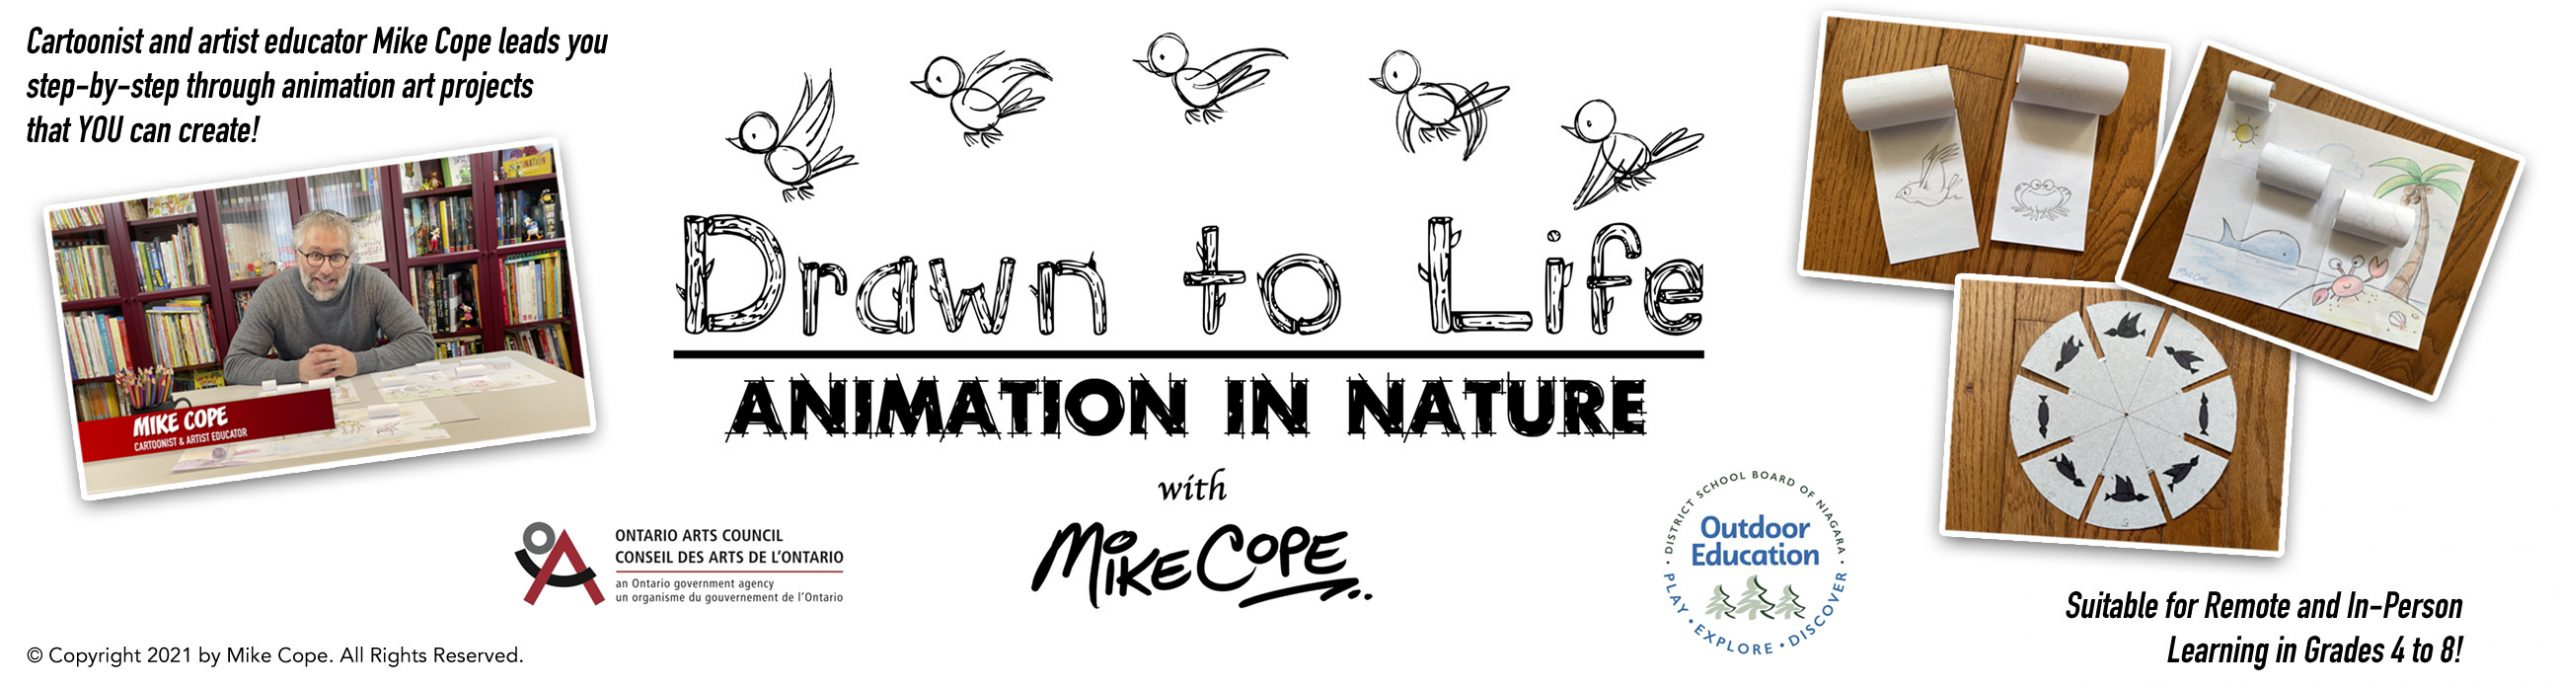 Drawn to Life: Animation in Nature (Arts Education Video Series) with Mike Cope